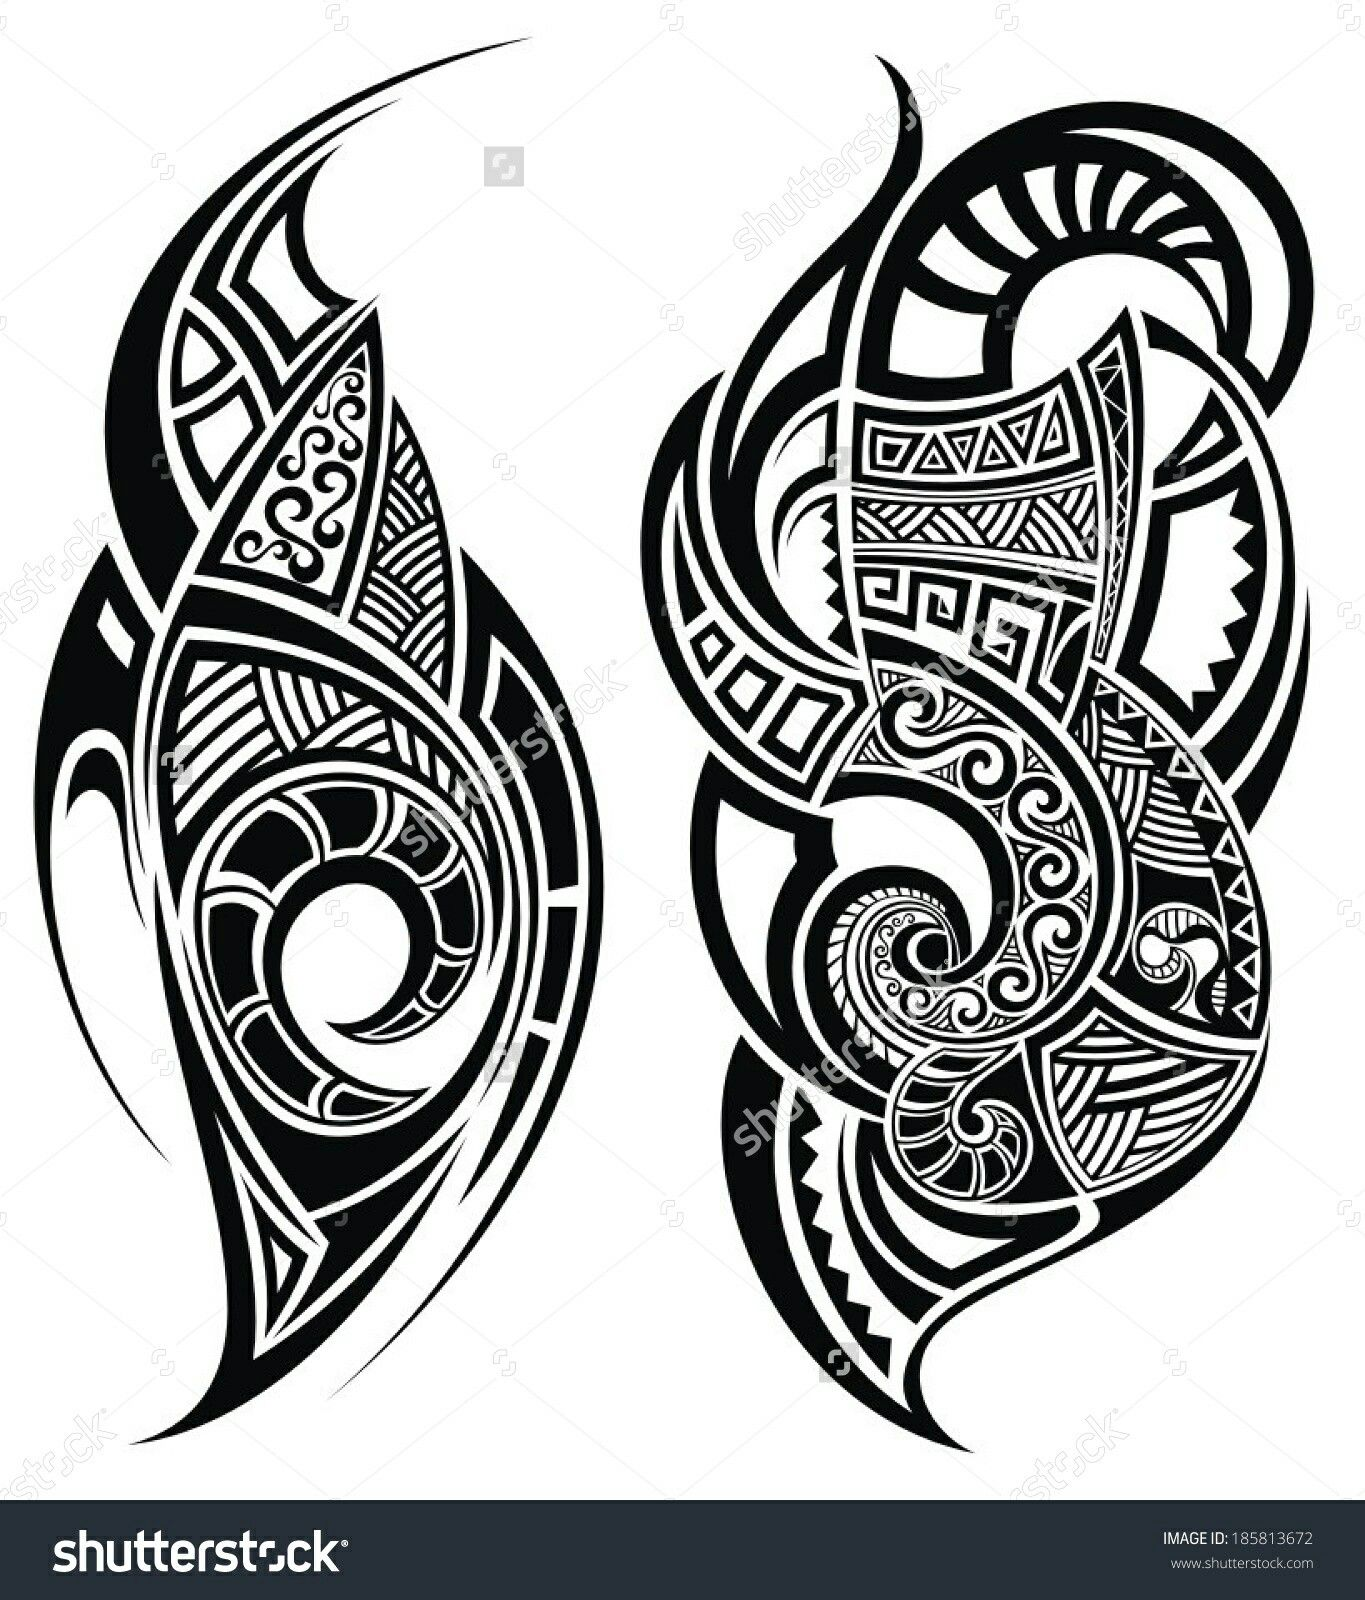 Pin by ryan wrigley on drawing idea pinterest drawing ideas tattoo design buy this stock vector on shutterstock find other images buycottarizona Images